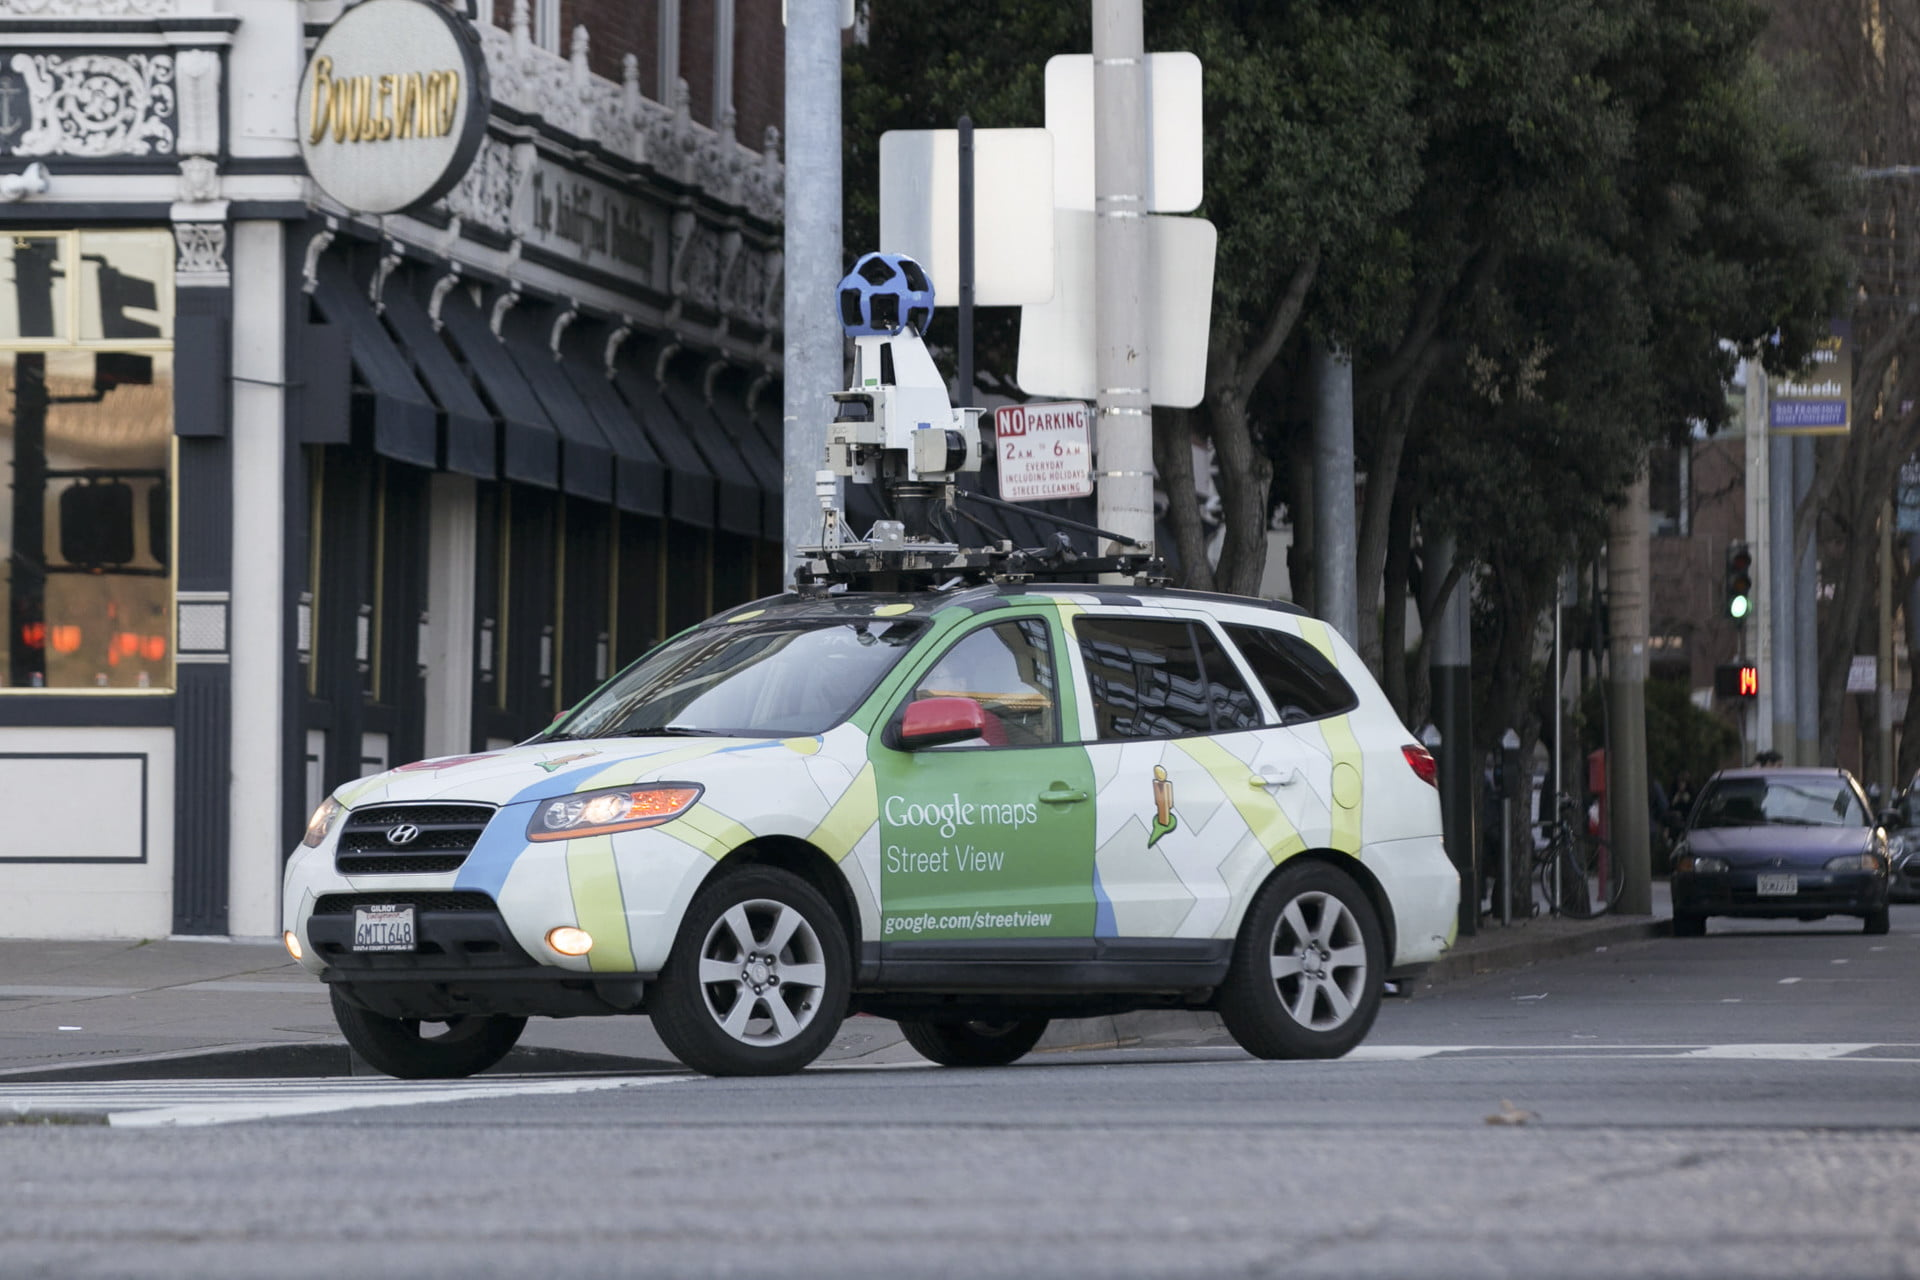 Google's Street View cars are helping build a giant map of global